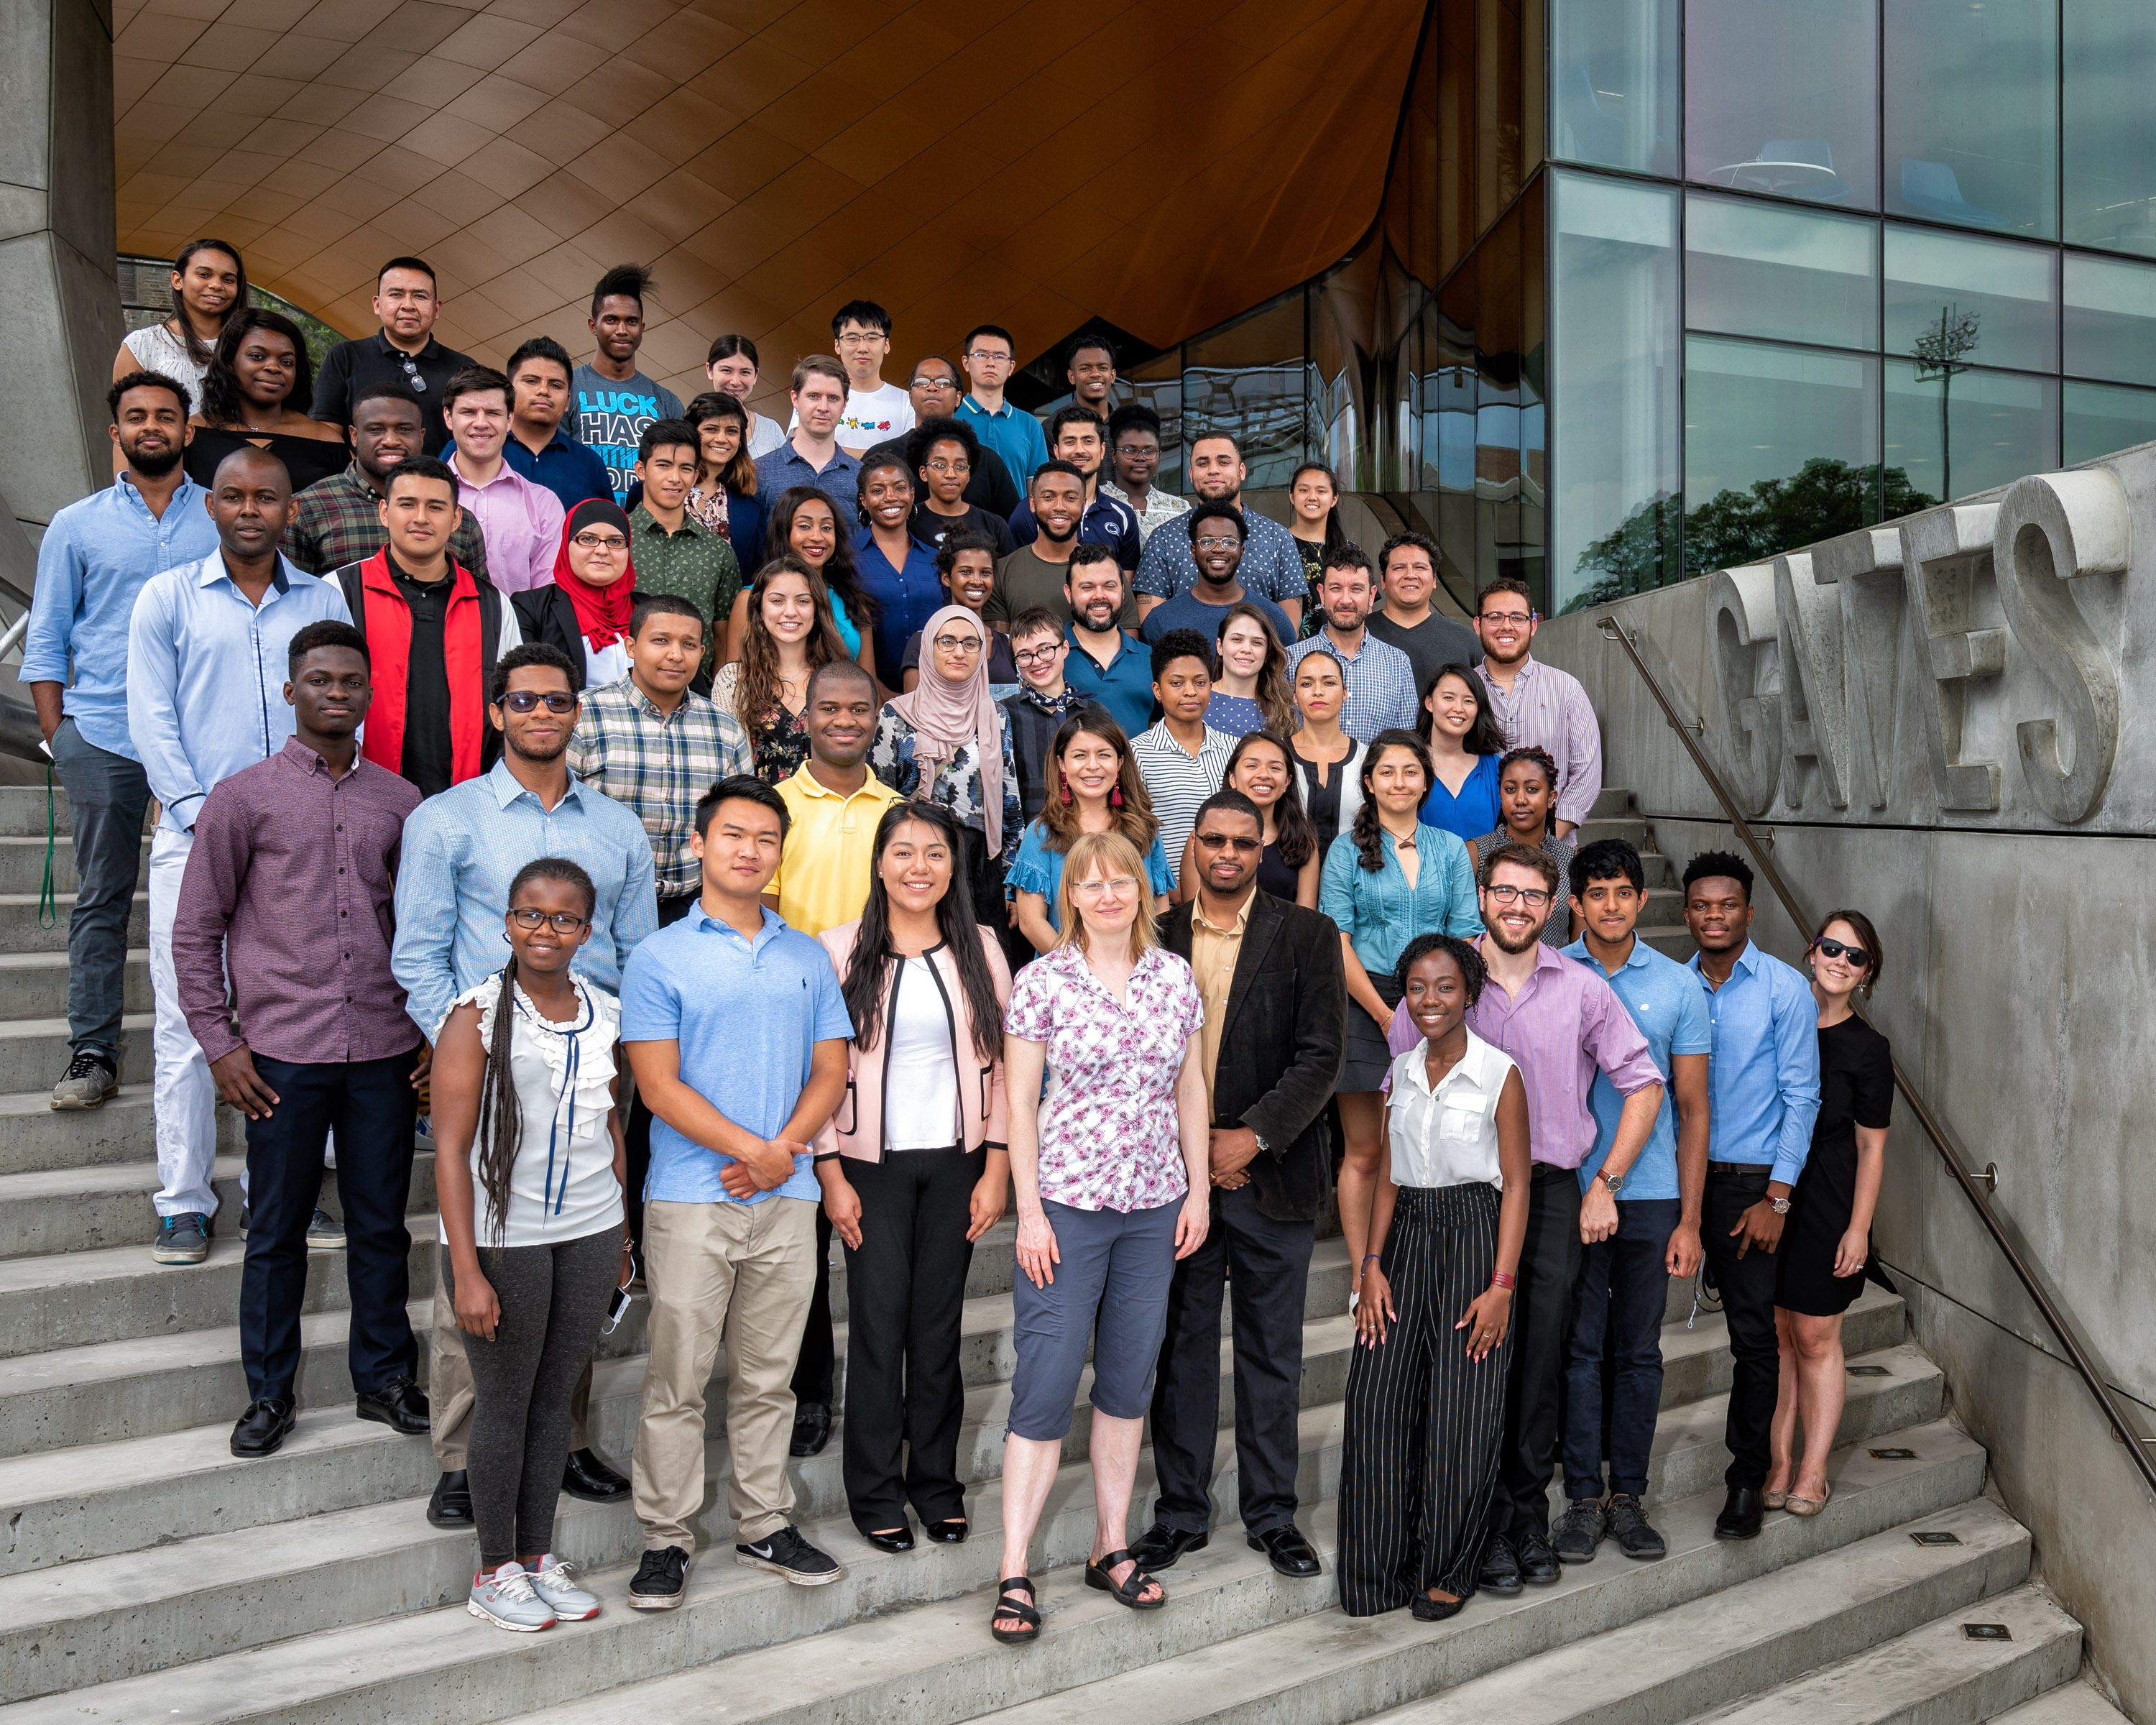 The 2018 cohort of students invited to Computing and Information Science's two summer programs, SONiC and Designing for Social Impact Class.